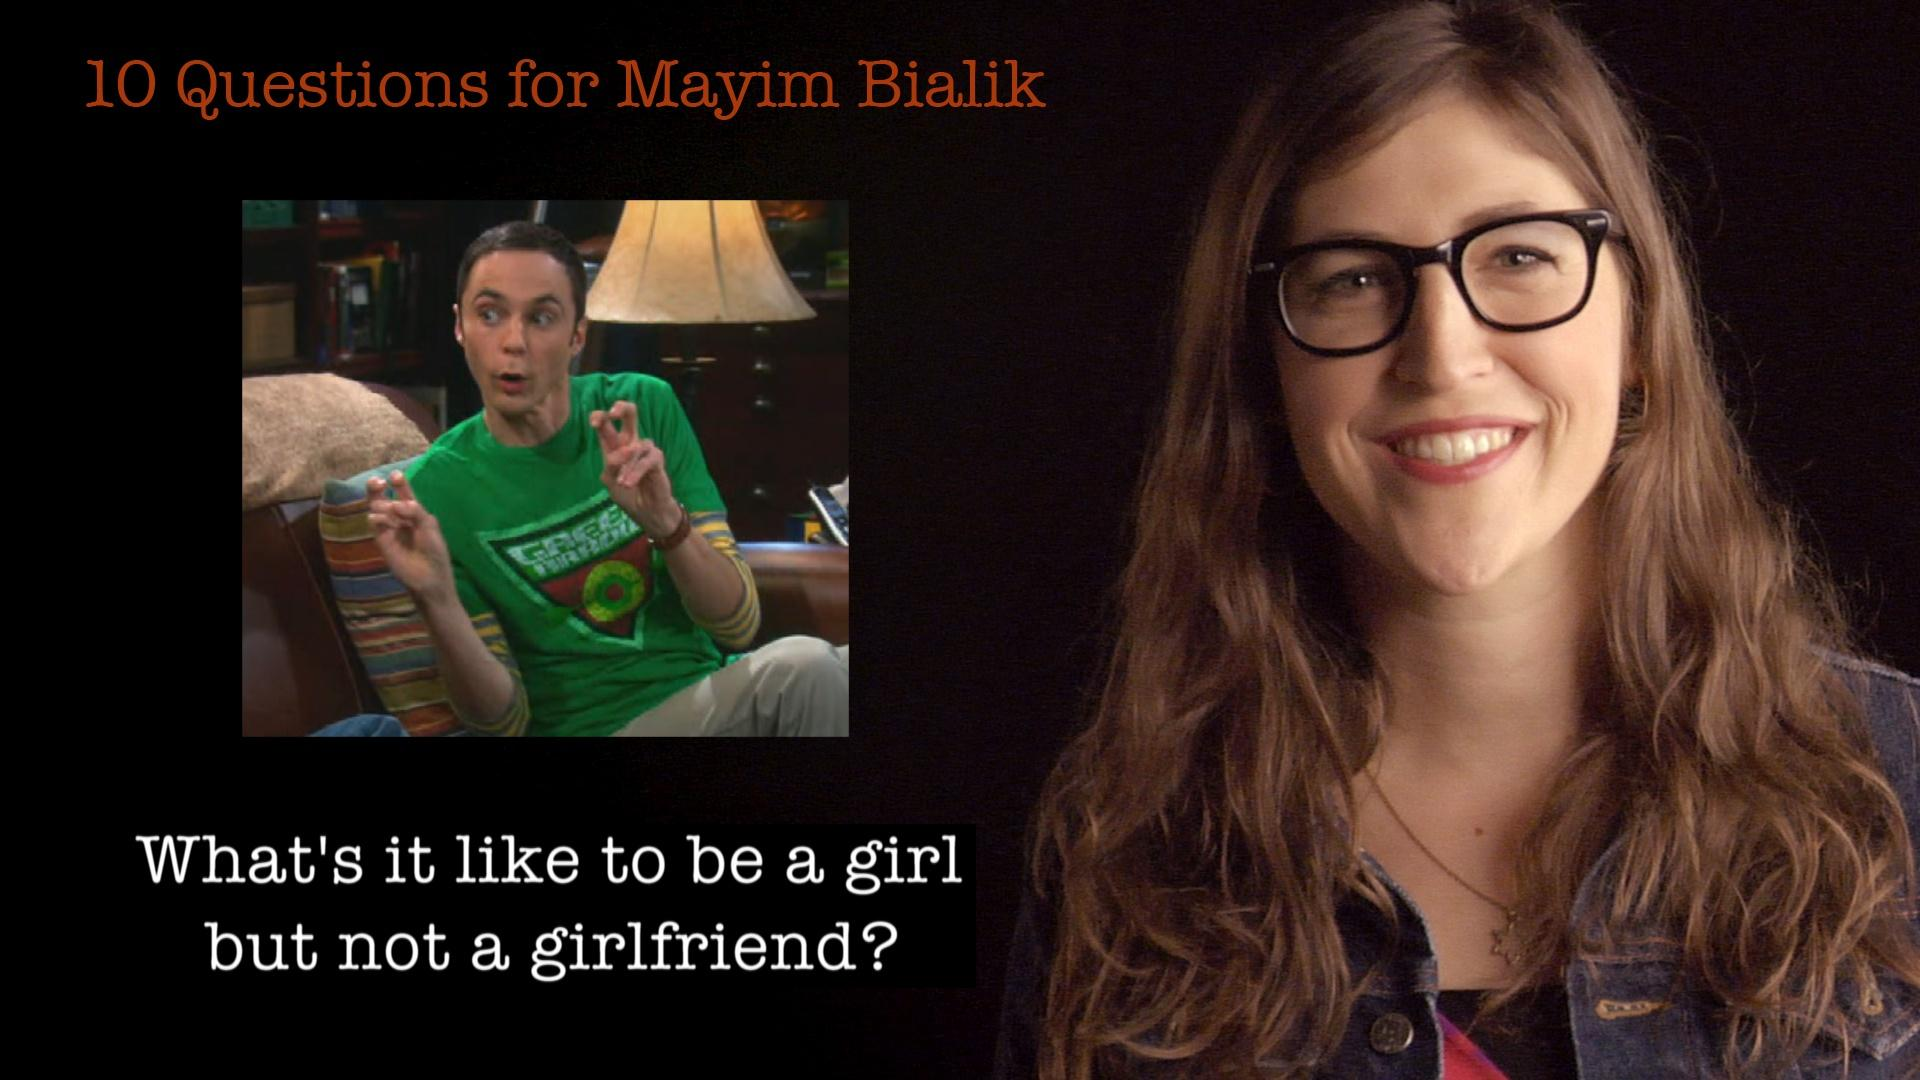 10 Questions for Mayim Bialik image